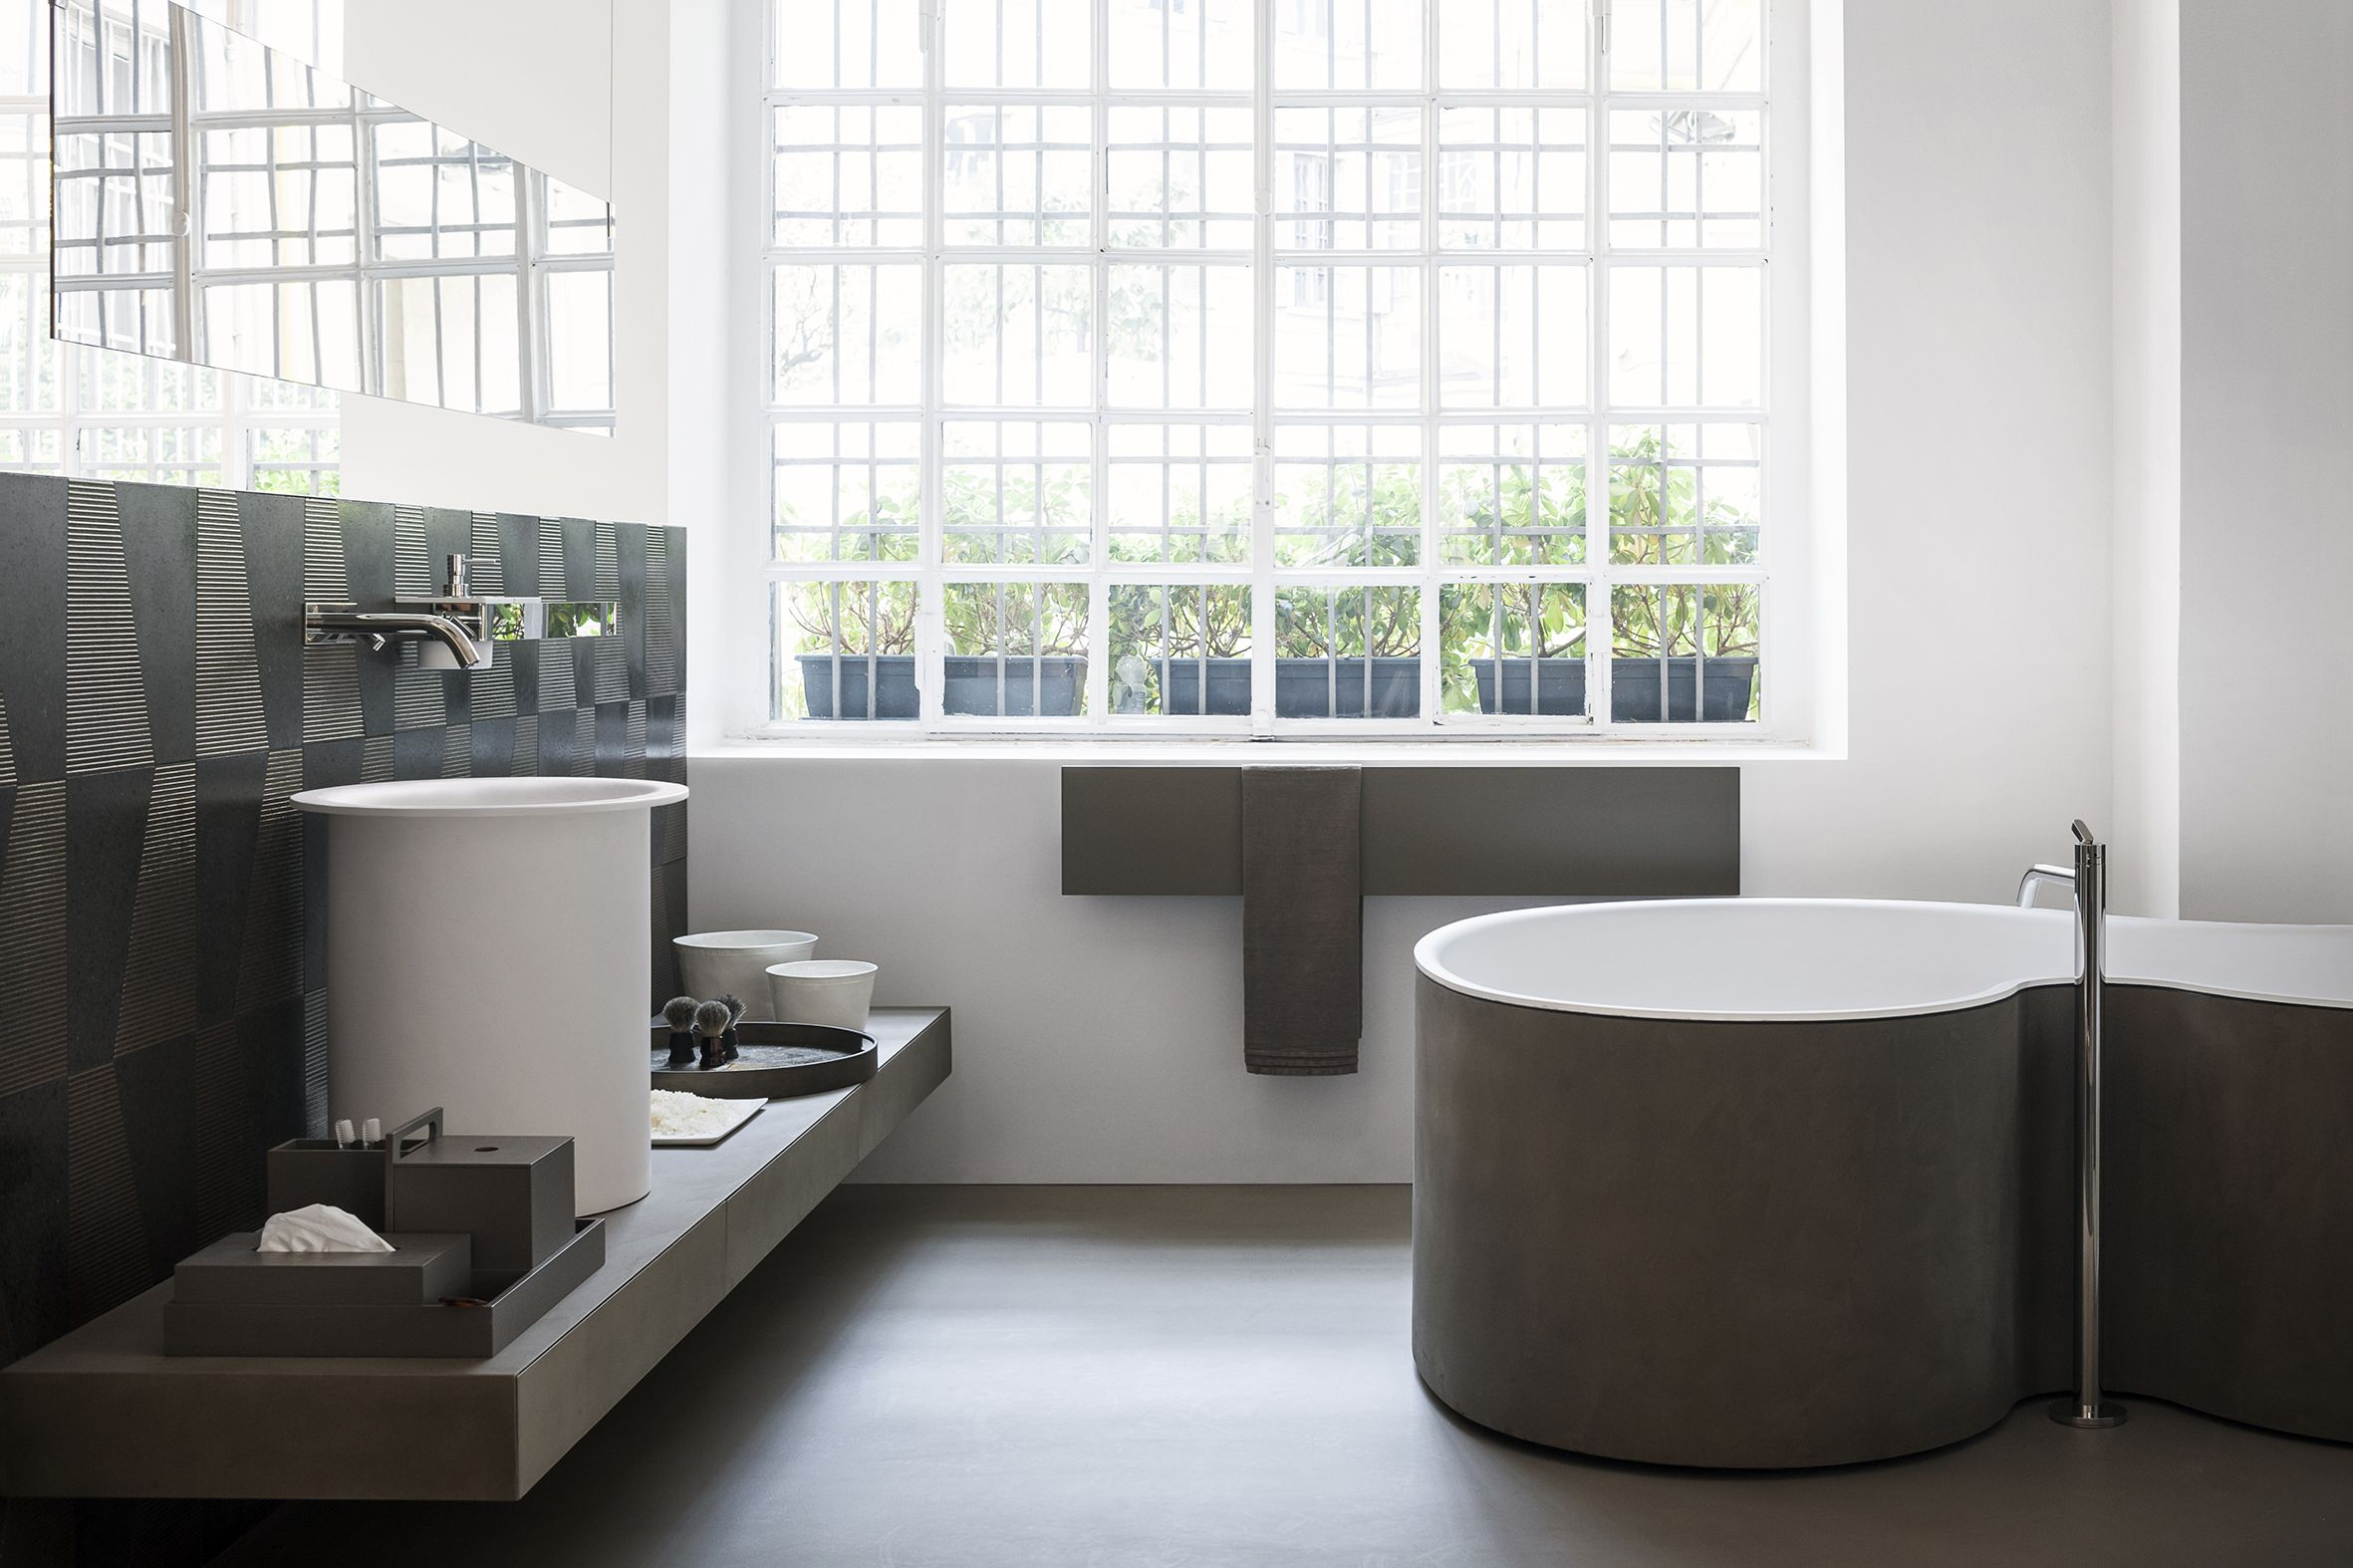 Contemporary Bathroom Accessories By Agape Design Presents Its Latest  Products. The Agape Range Of Products Is A Major Project That Changes,  Updates And Is ...